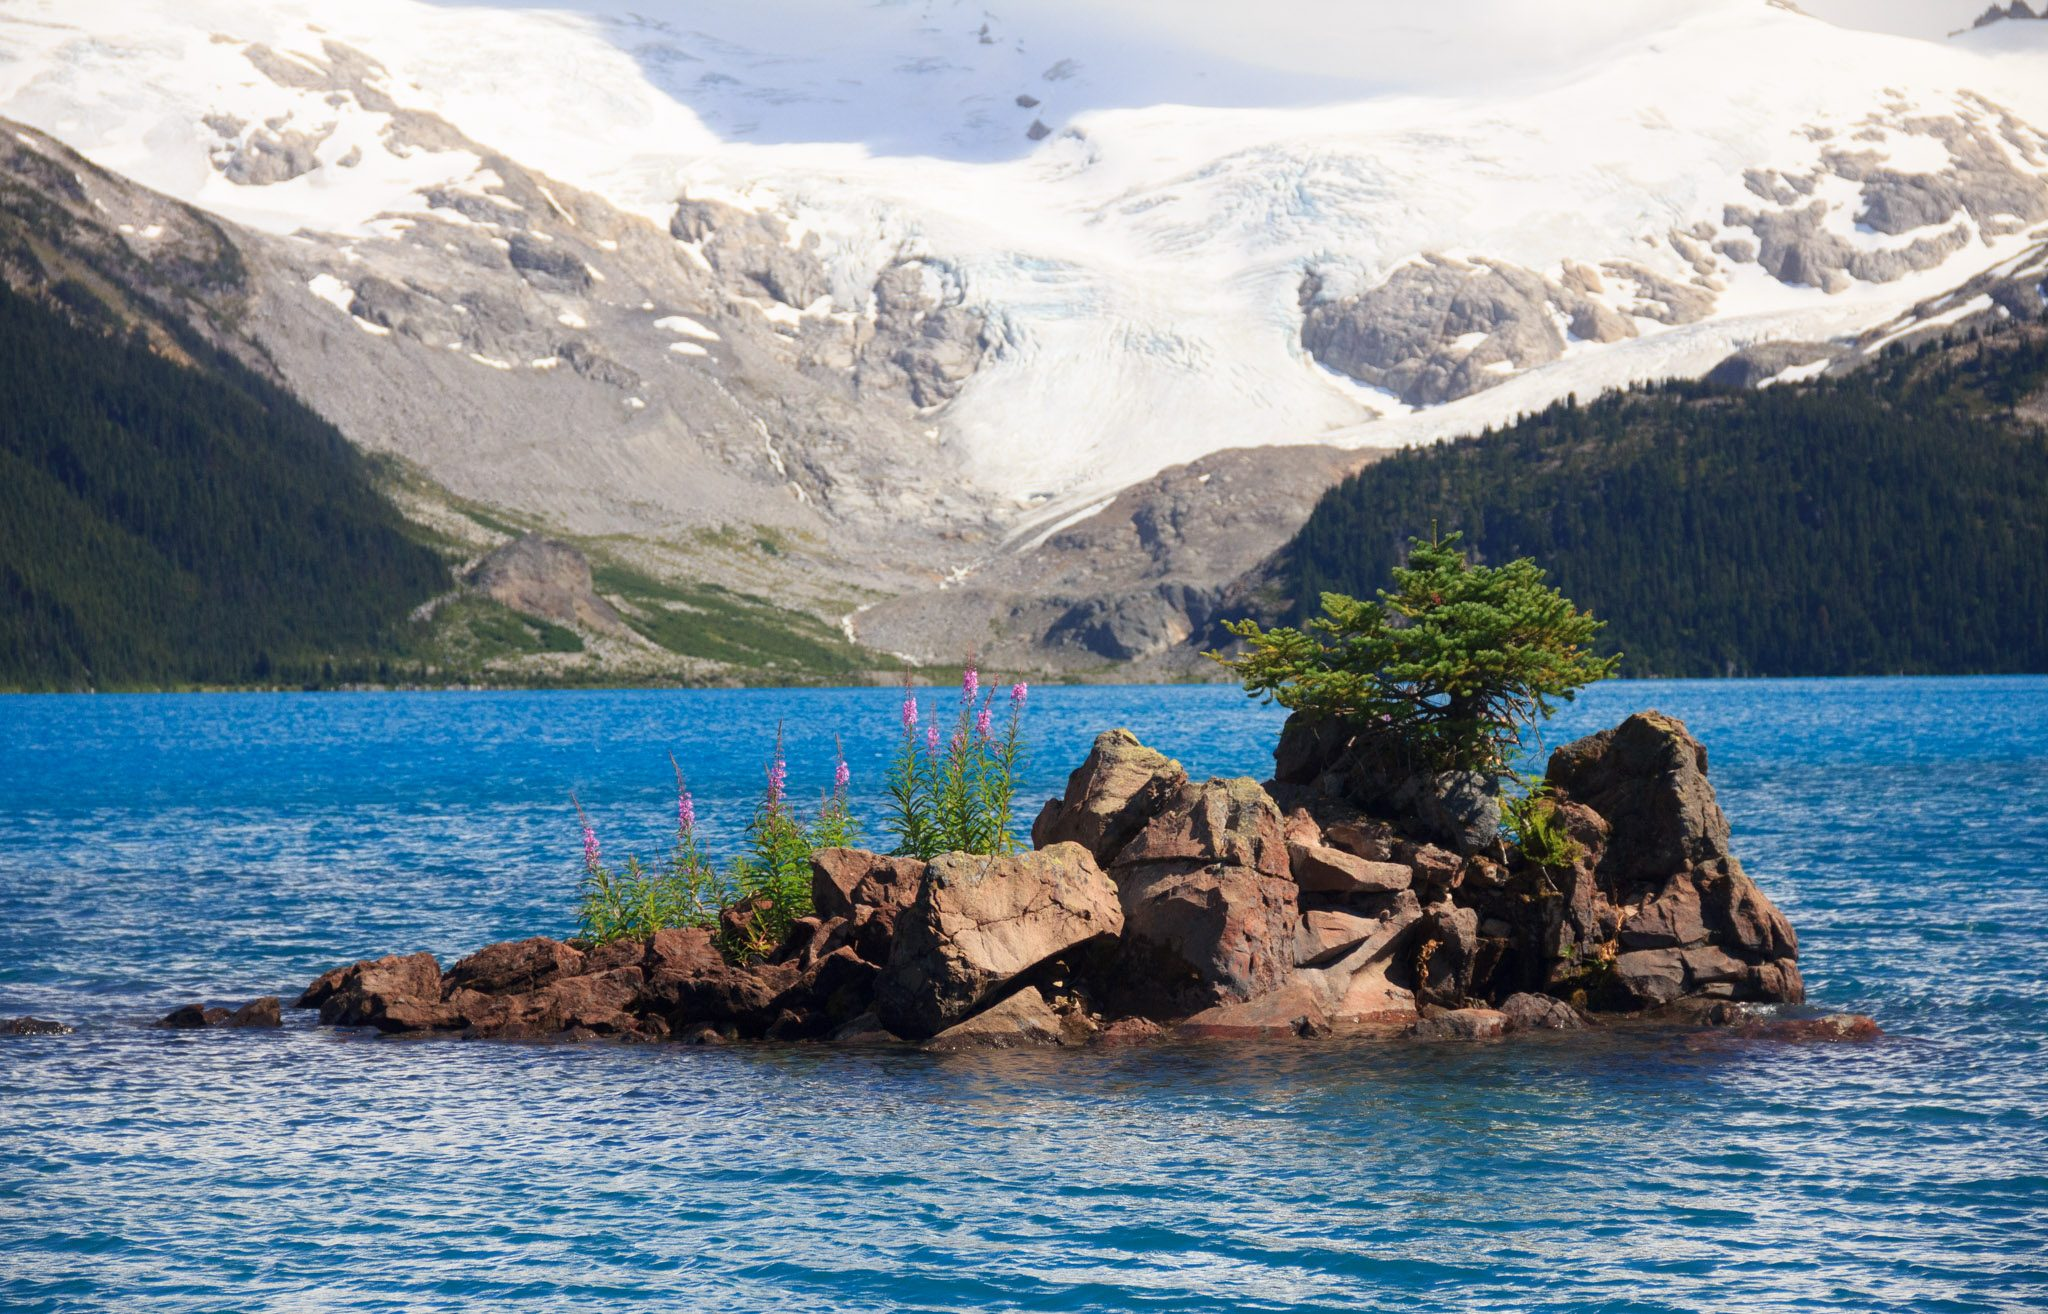 Small island, big glacier at Garibaldi Lake (Daily Hive/Conrad Olson)